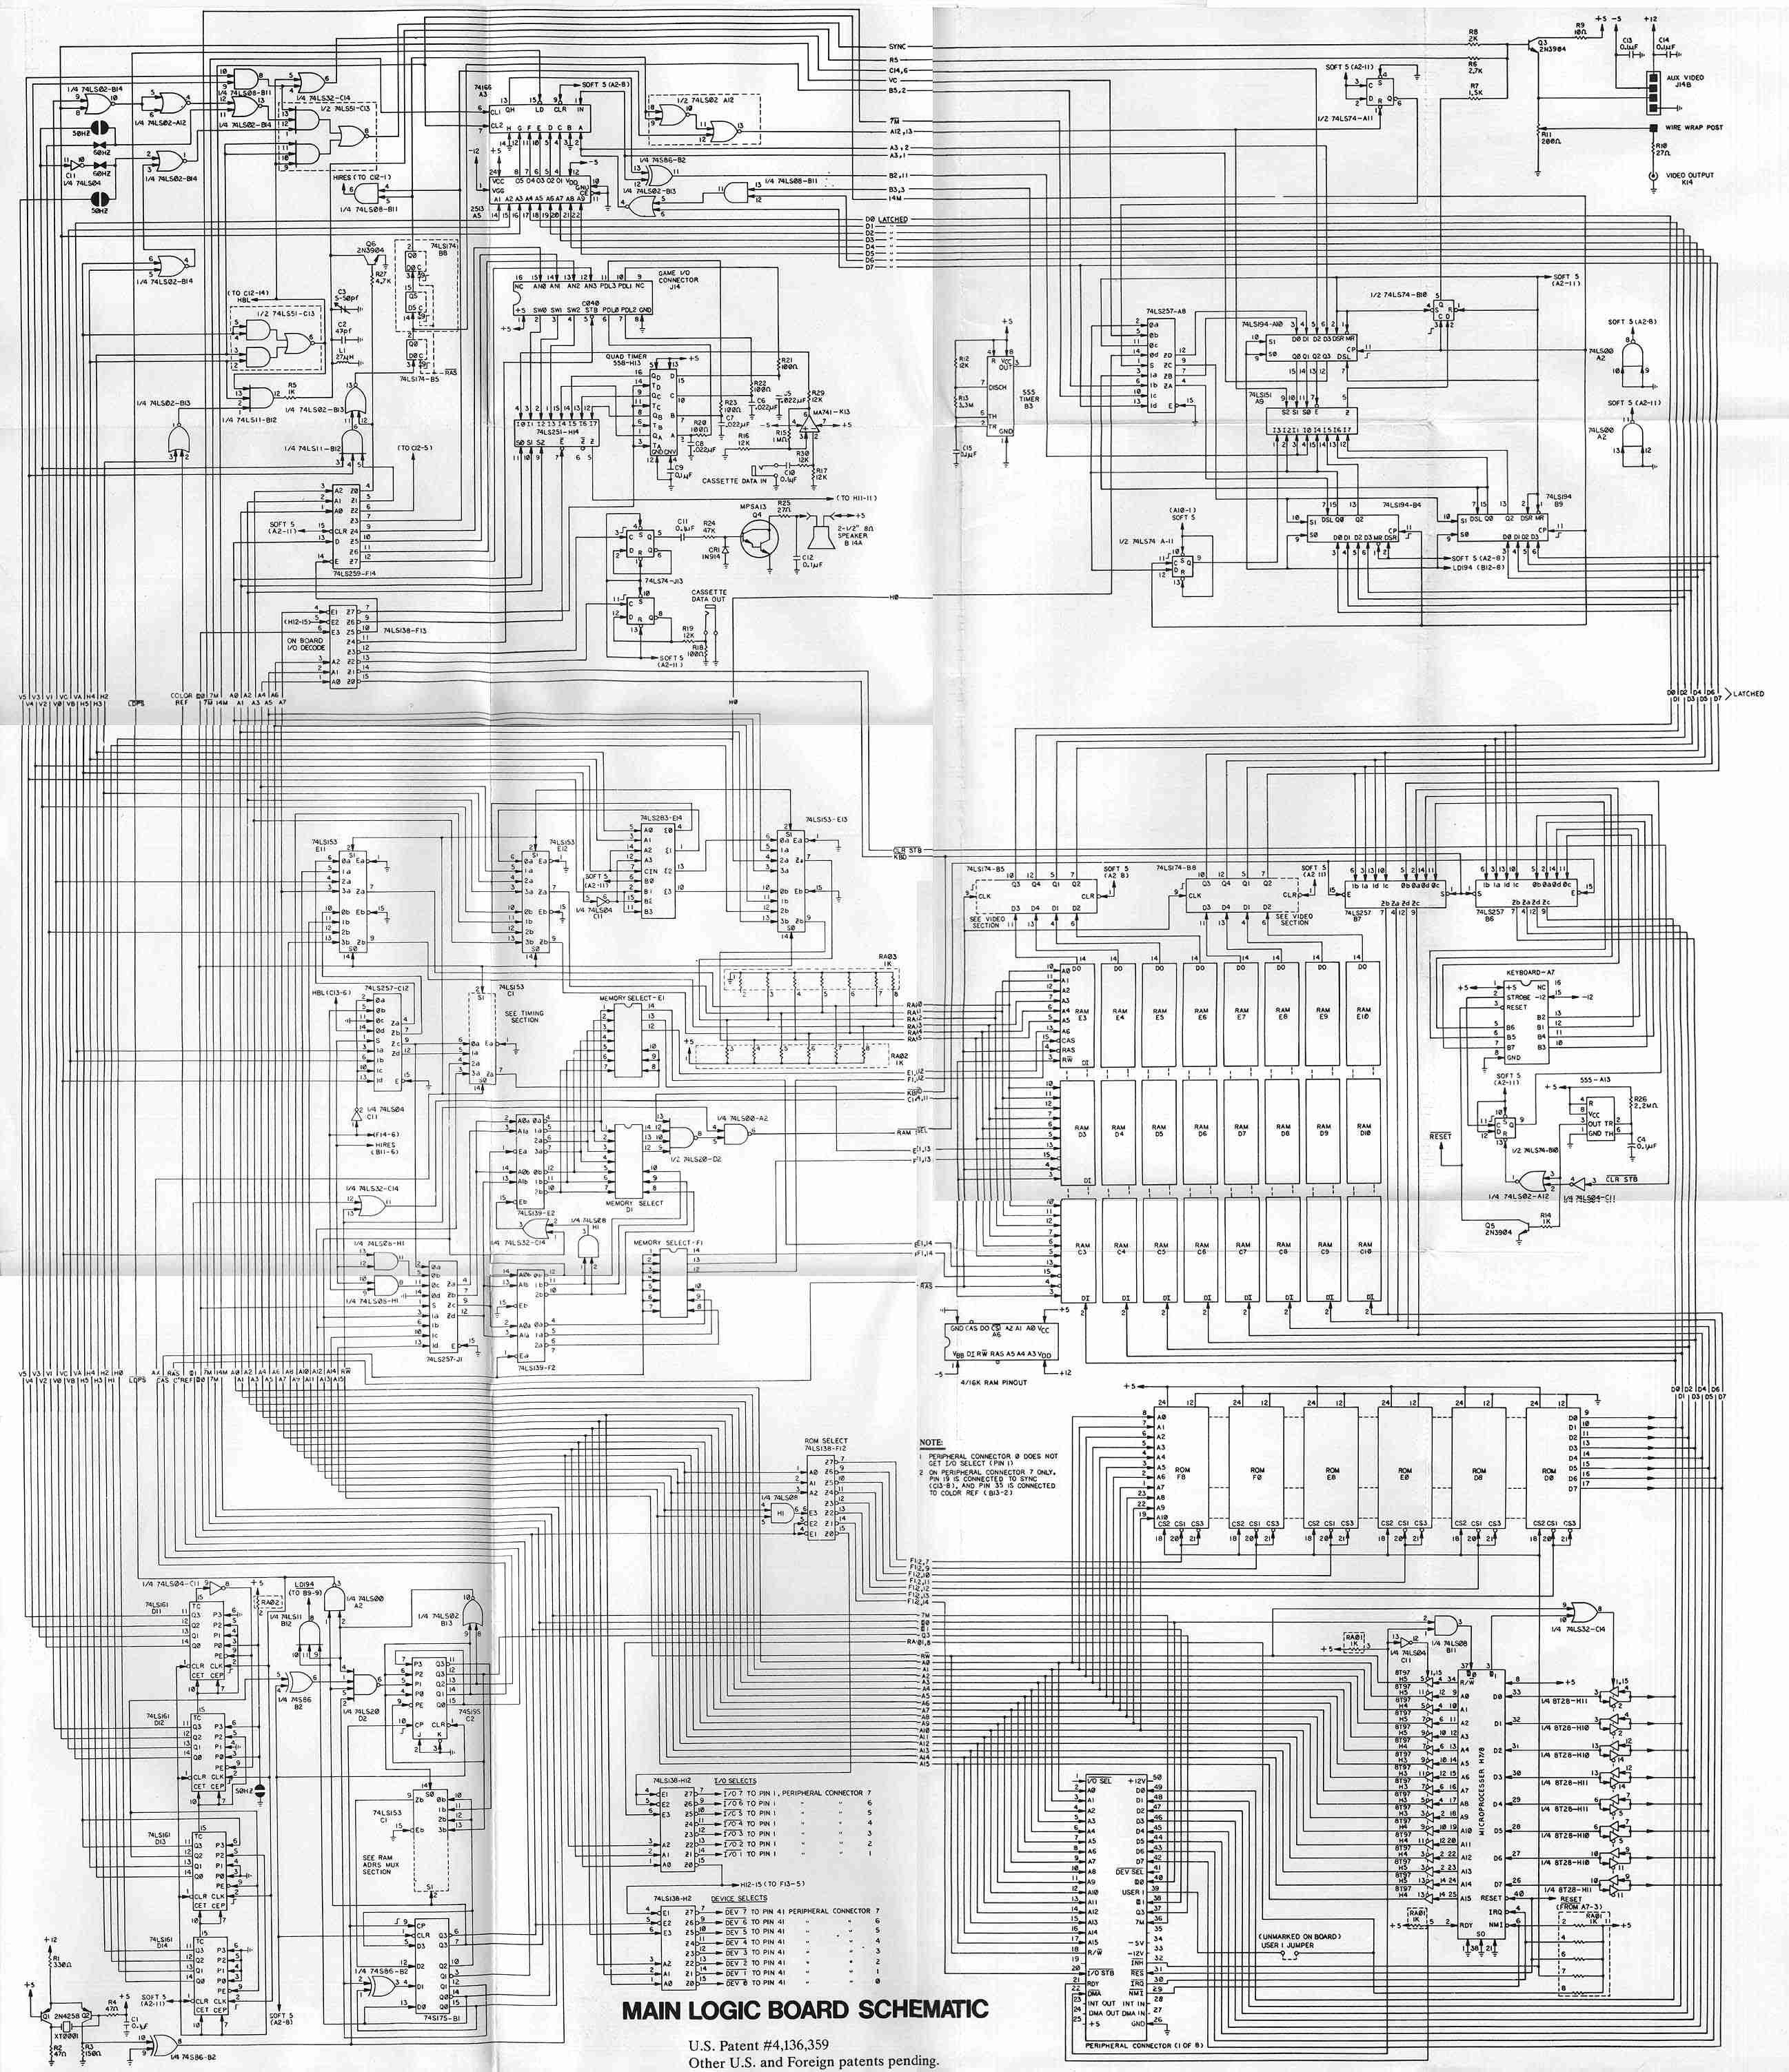 medium resolution of apple 2 main logic board electronic circuit schematic